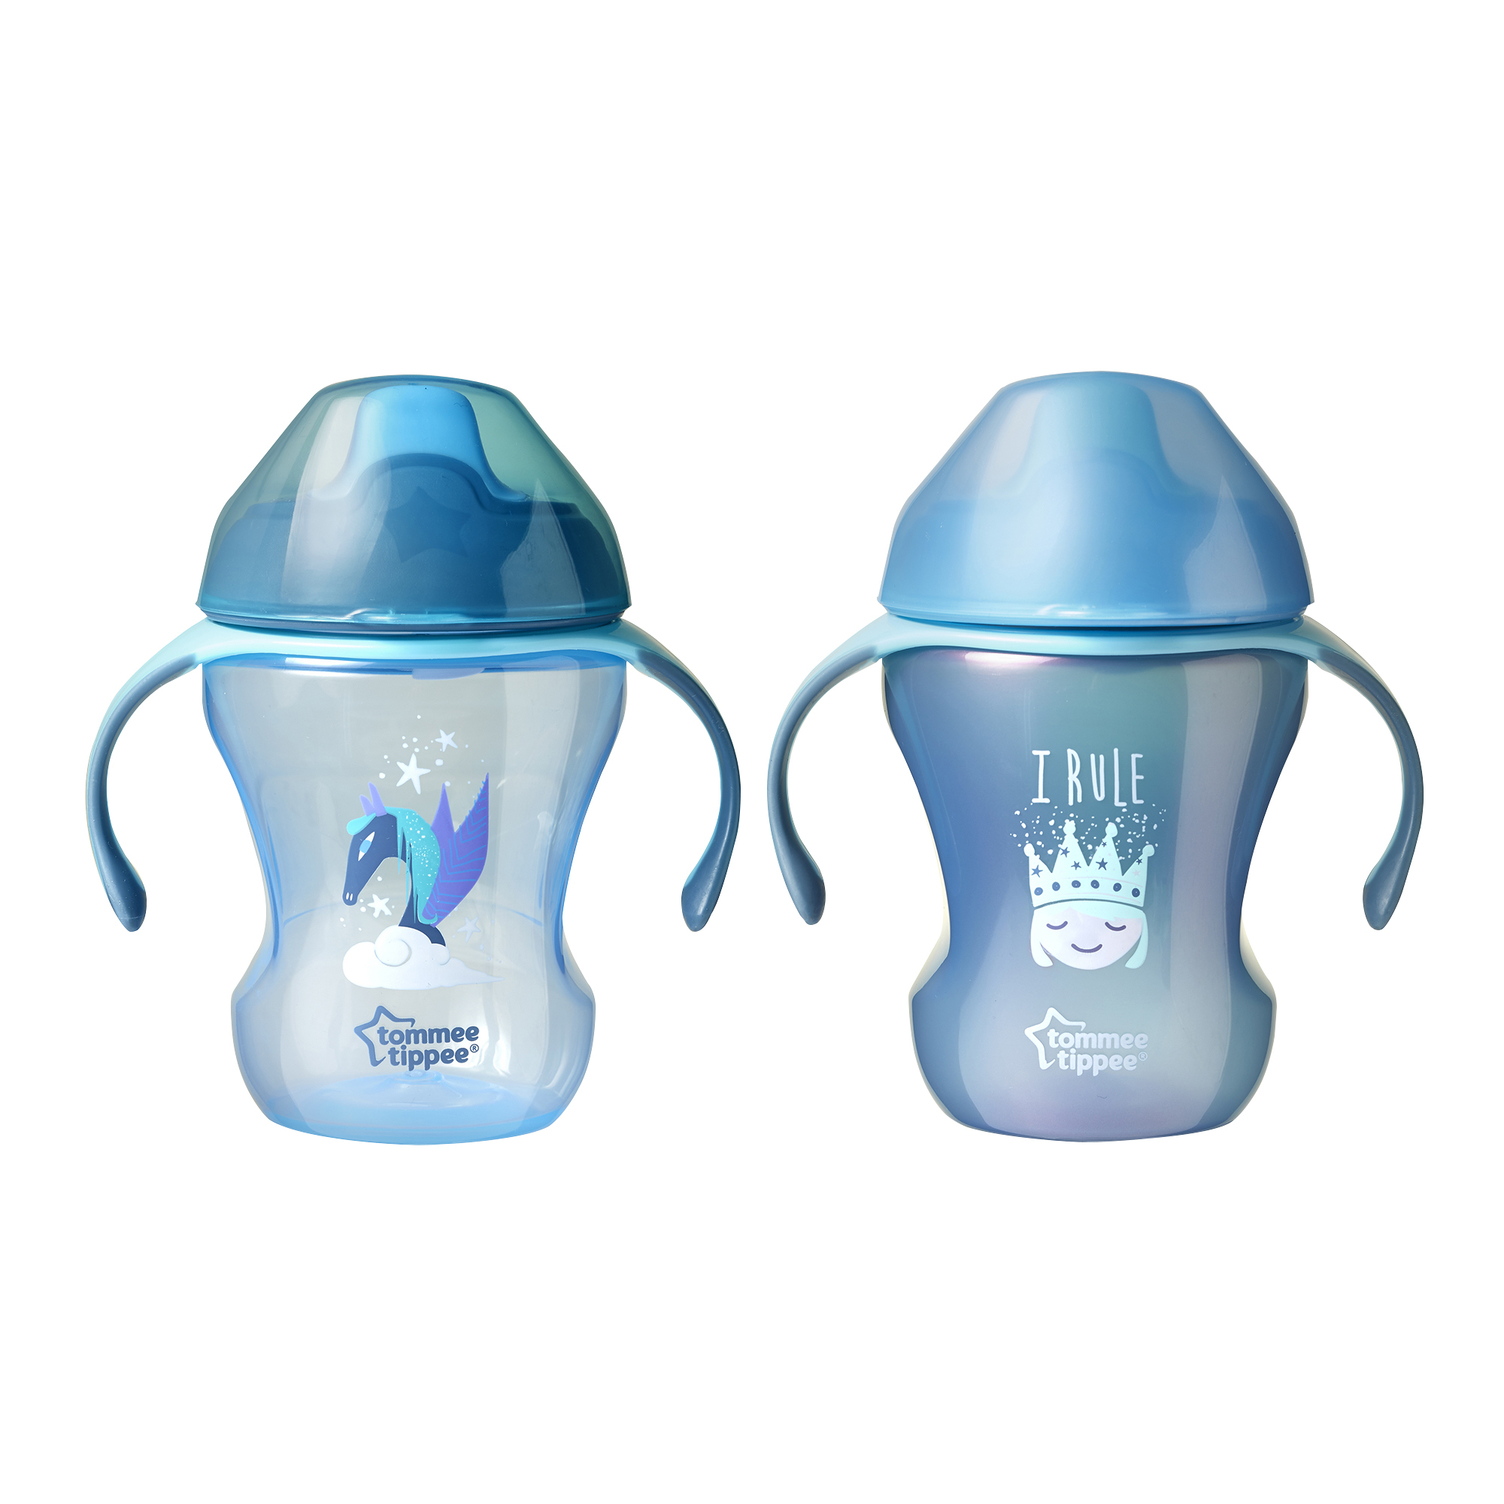 Tommee Tippee Infant Trainer Sippee Cup, 7+ months � 8 ounces, 2 count (Colors May Vary) by Tommee Tippee